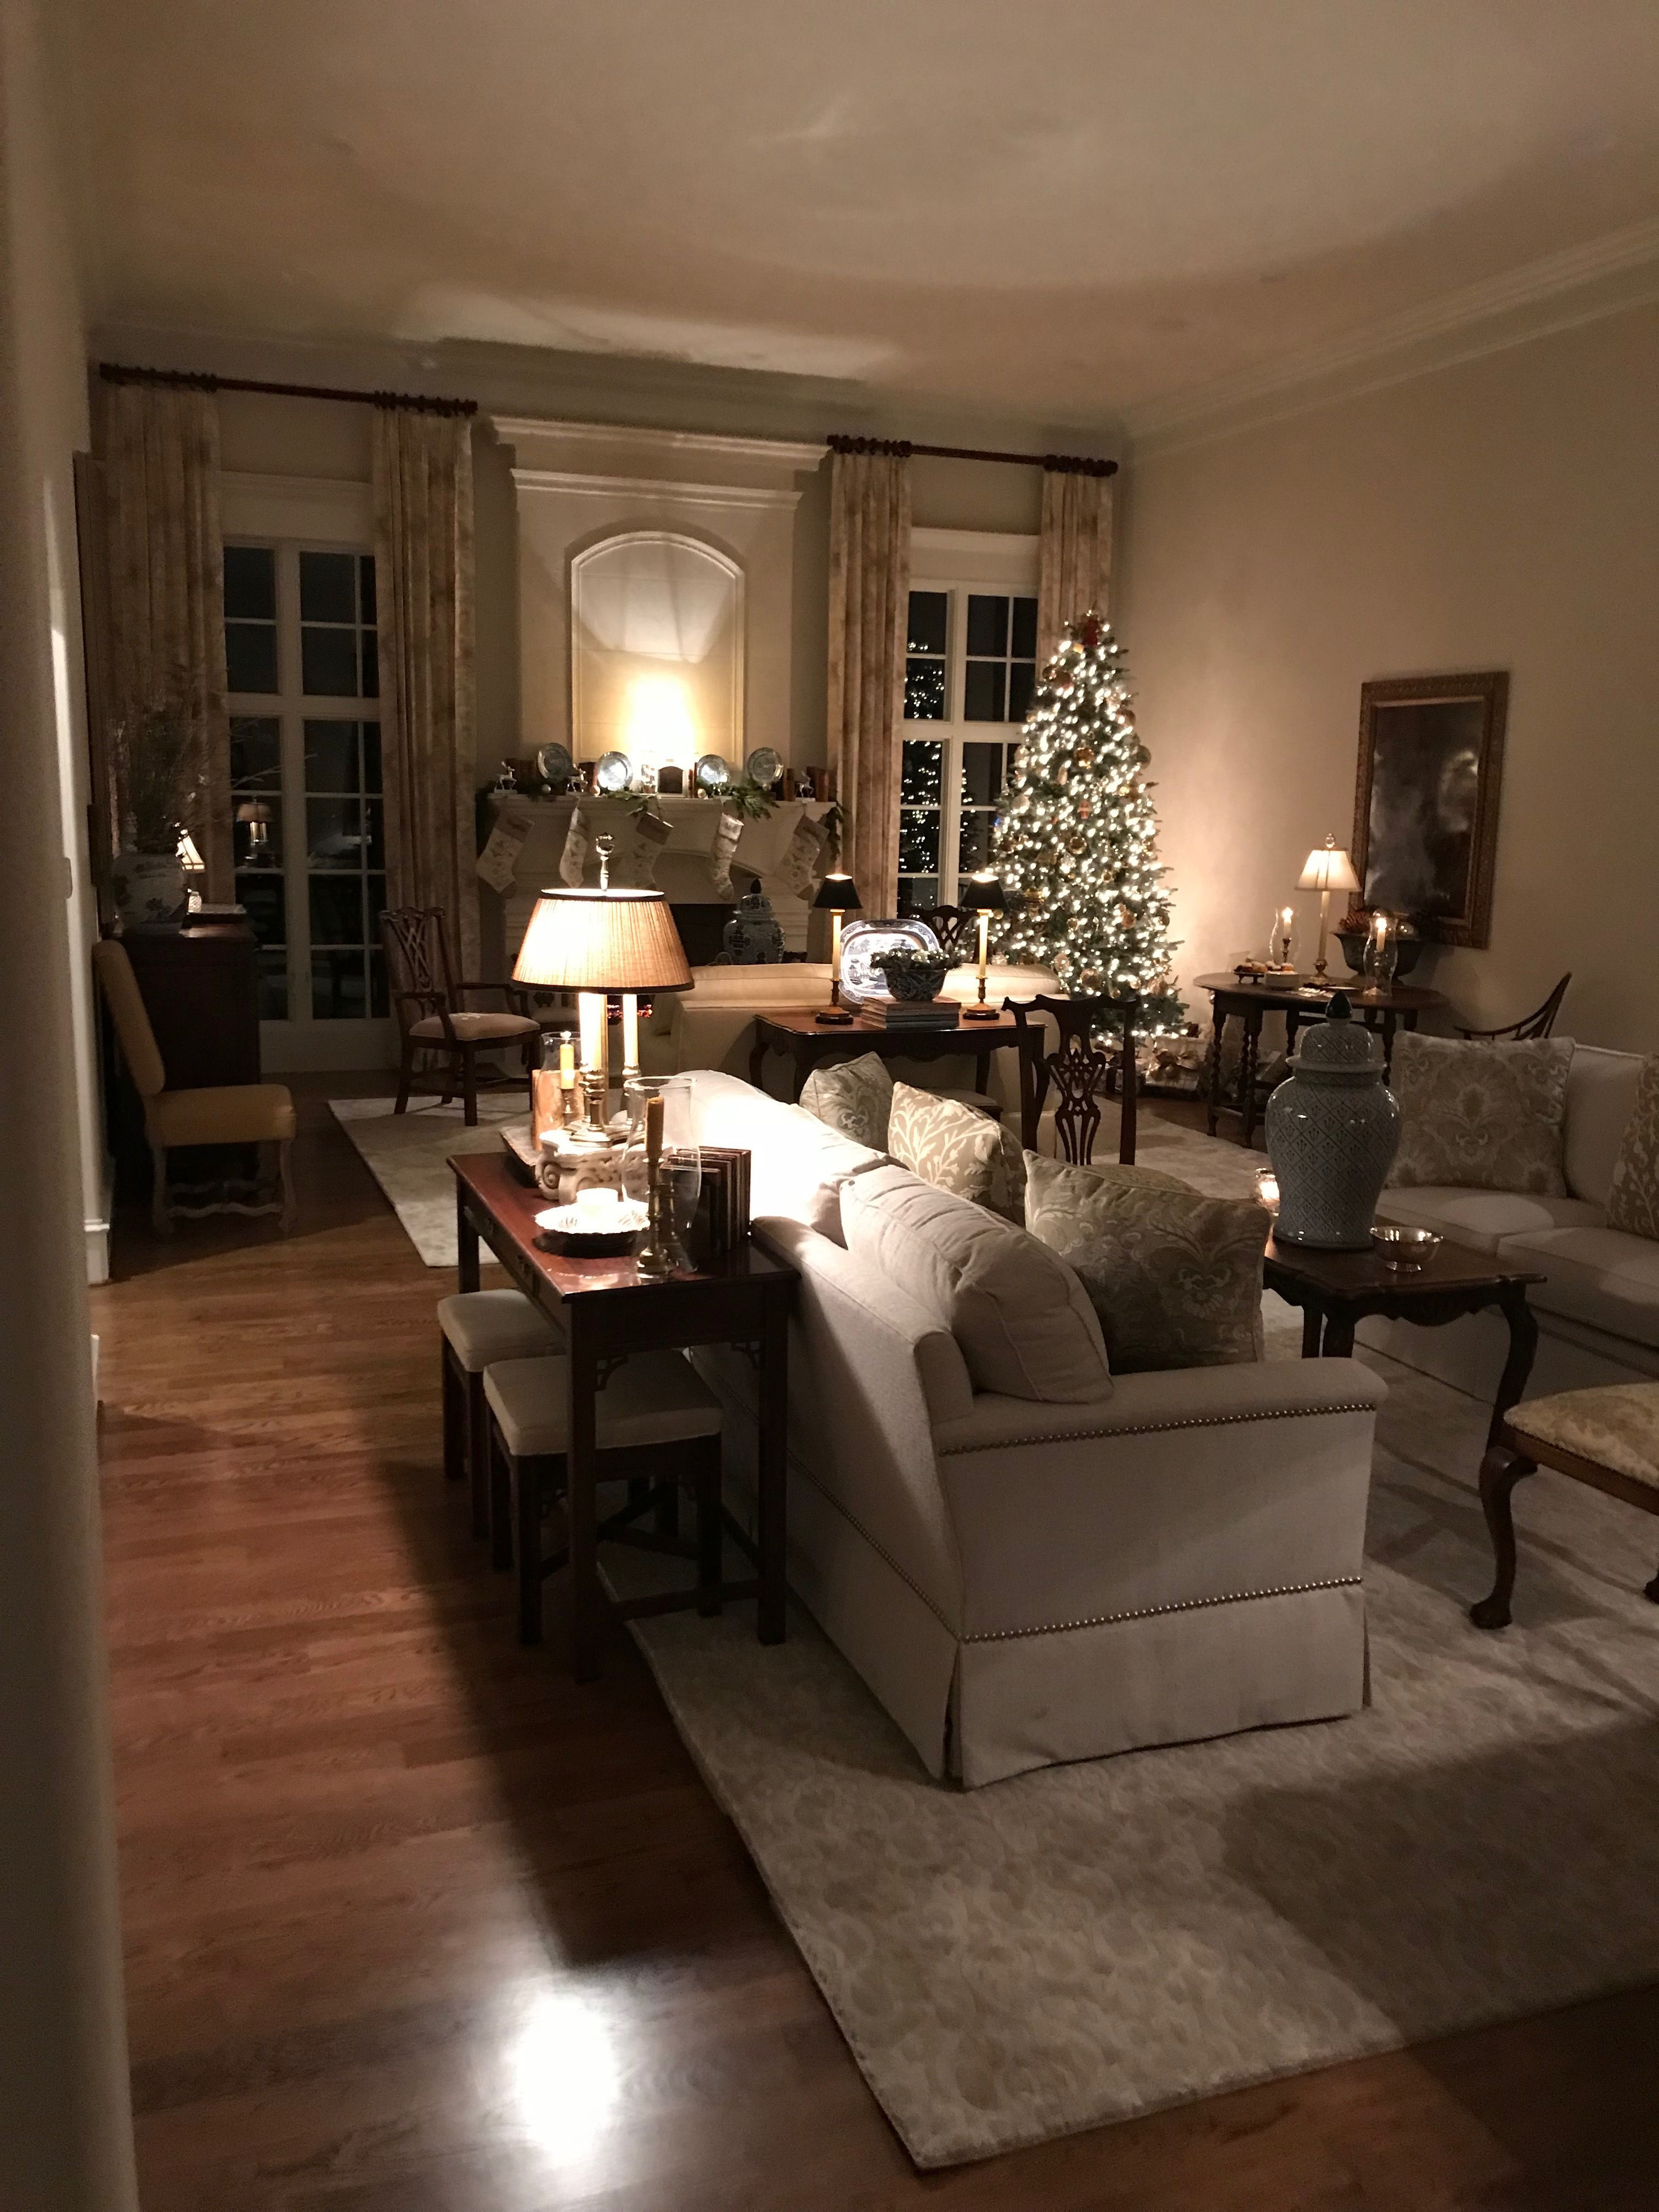 Best Living Room Night Decor And Please Those Windows Facing The Entrance And Road Early2019 640 x 480